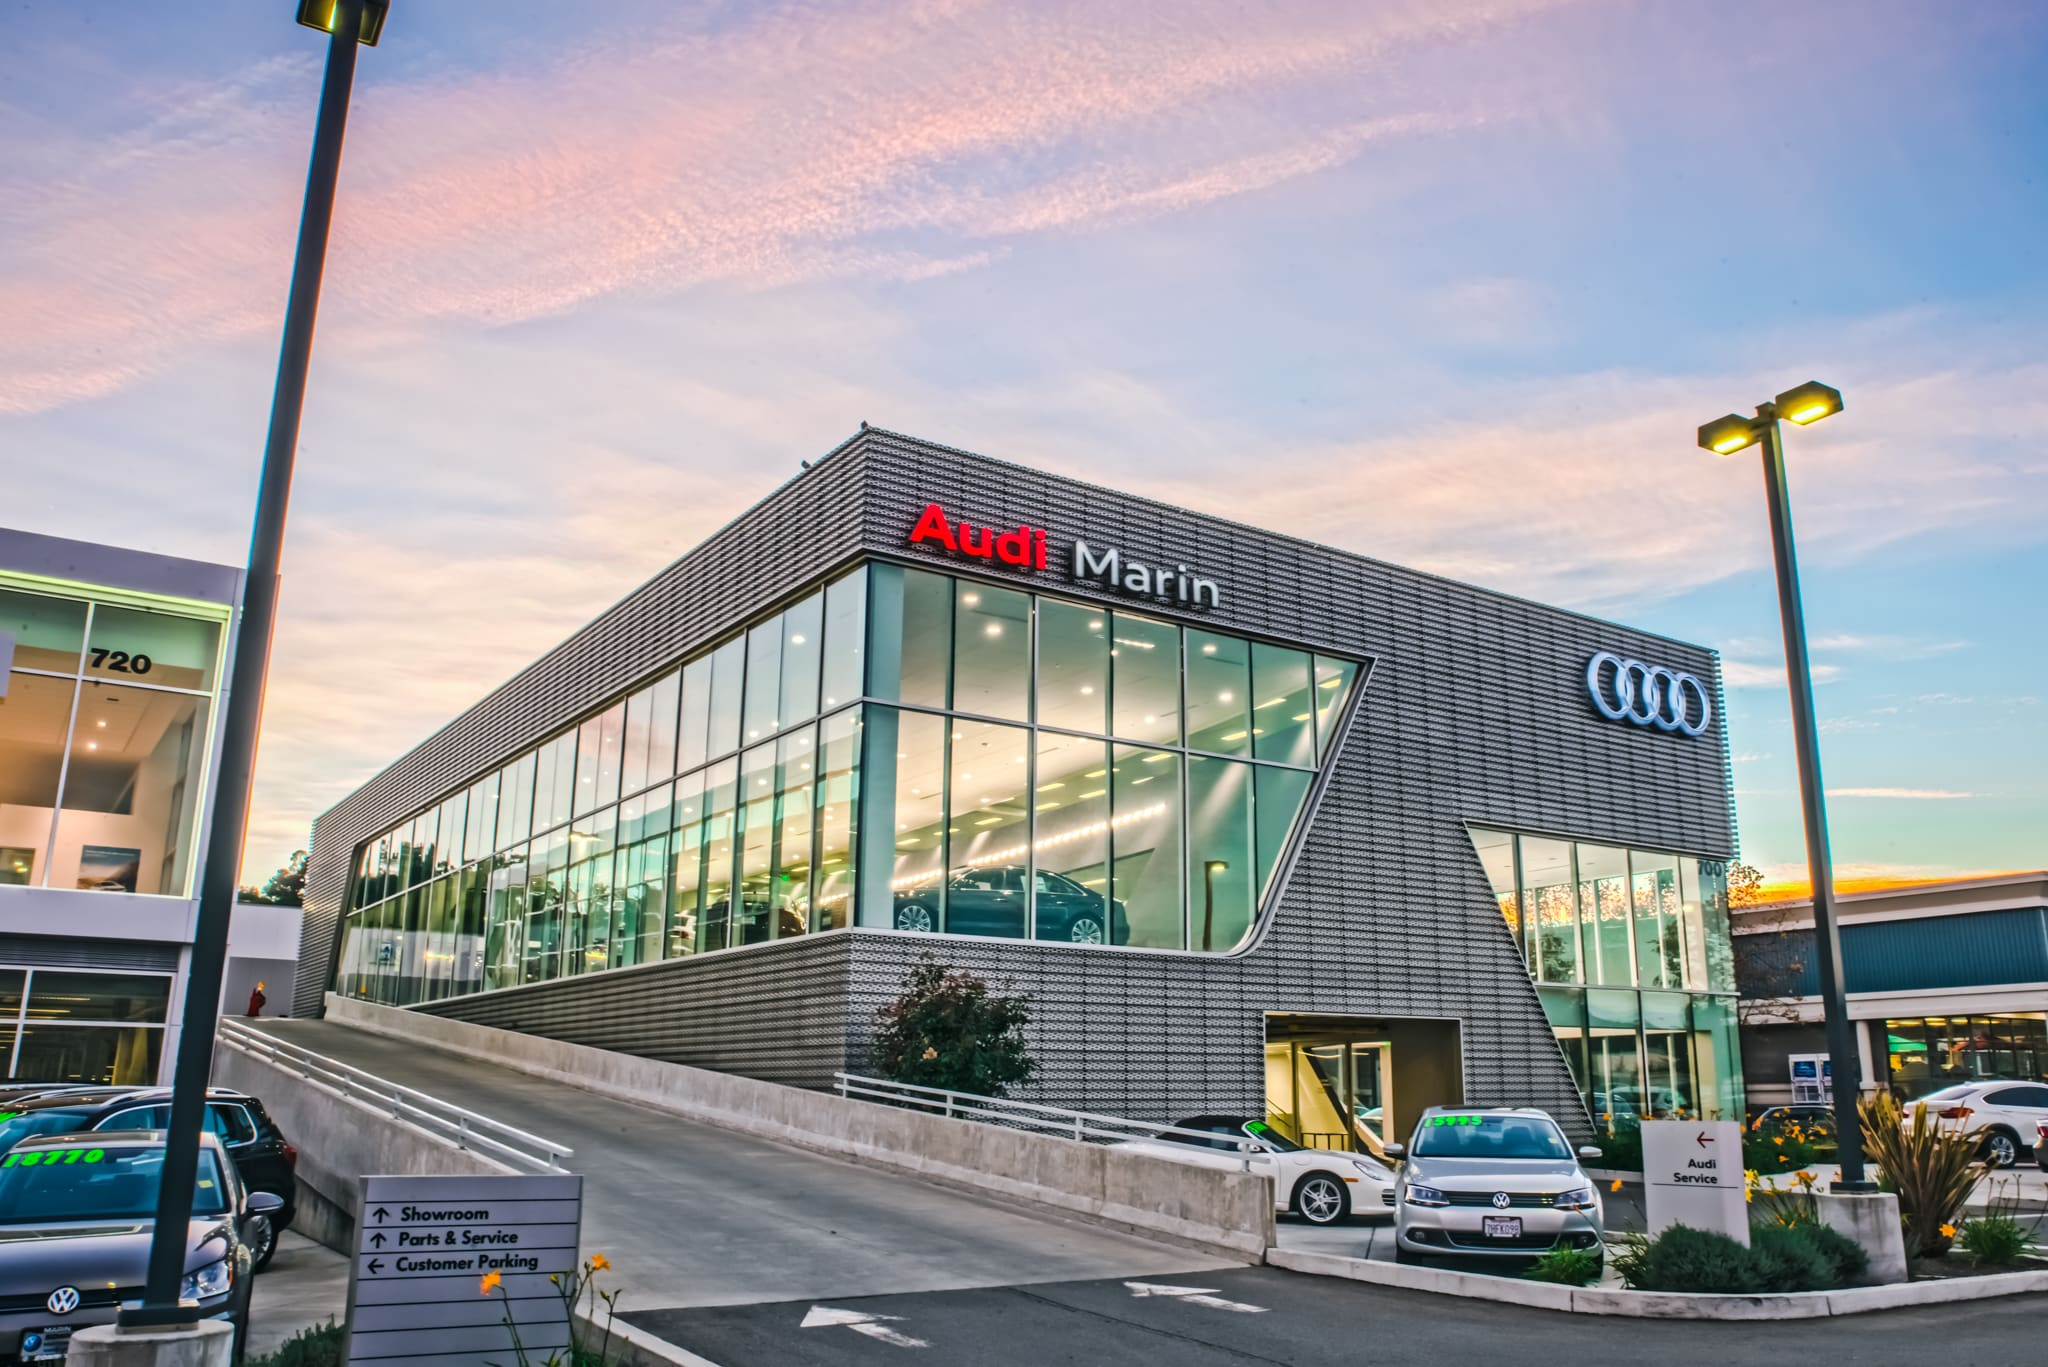 Audi Marin New And Used Audi Dealership Serving The Greater San - Audi san francisco service